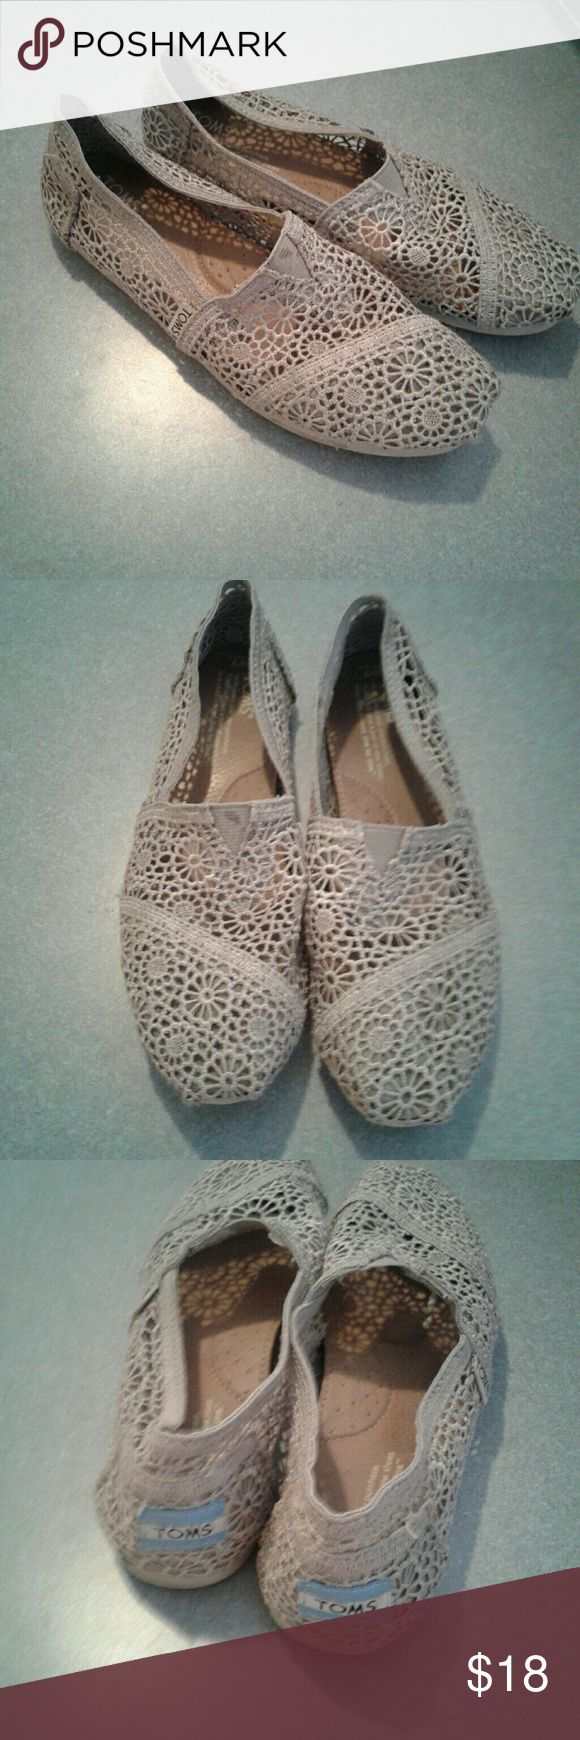 Grey floral toms flats Womens size 7 gray floral design toms slip on flats. Do show wear, with light staining. Shoes are exactly as pictured Toms Shoes Flats & Loafers